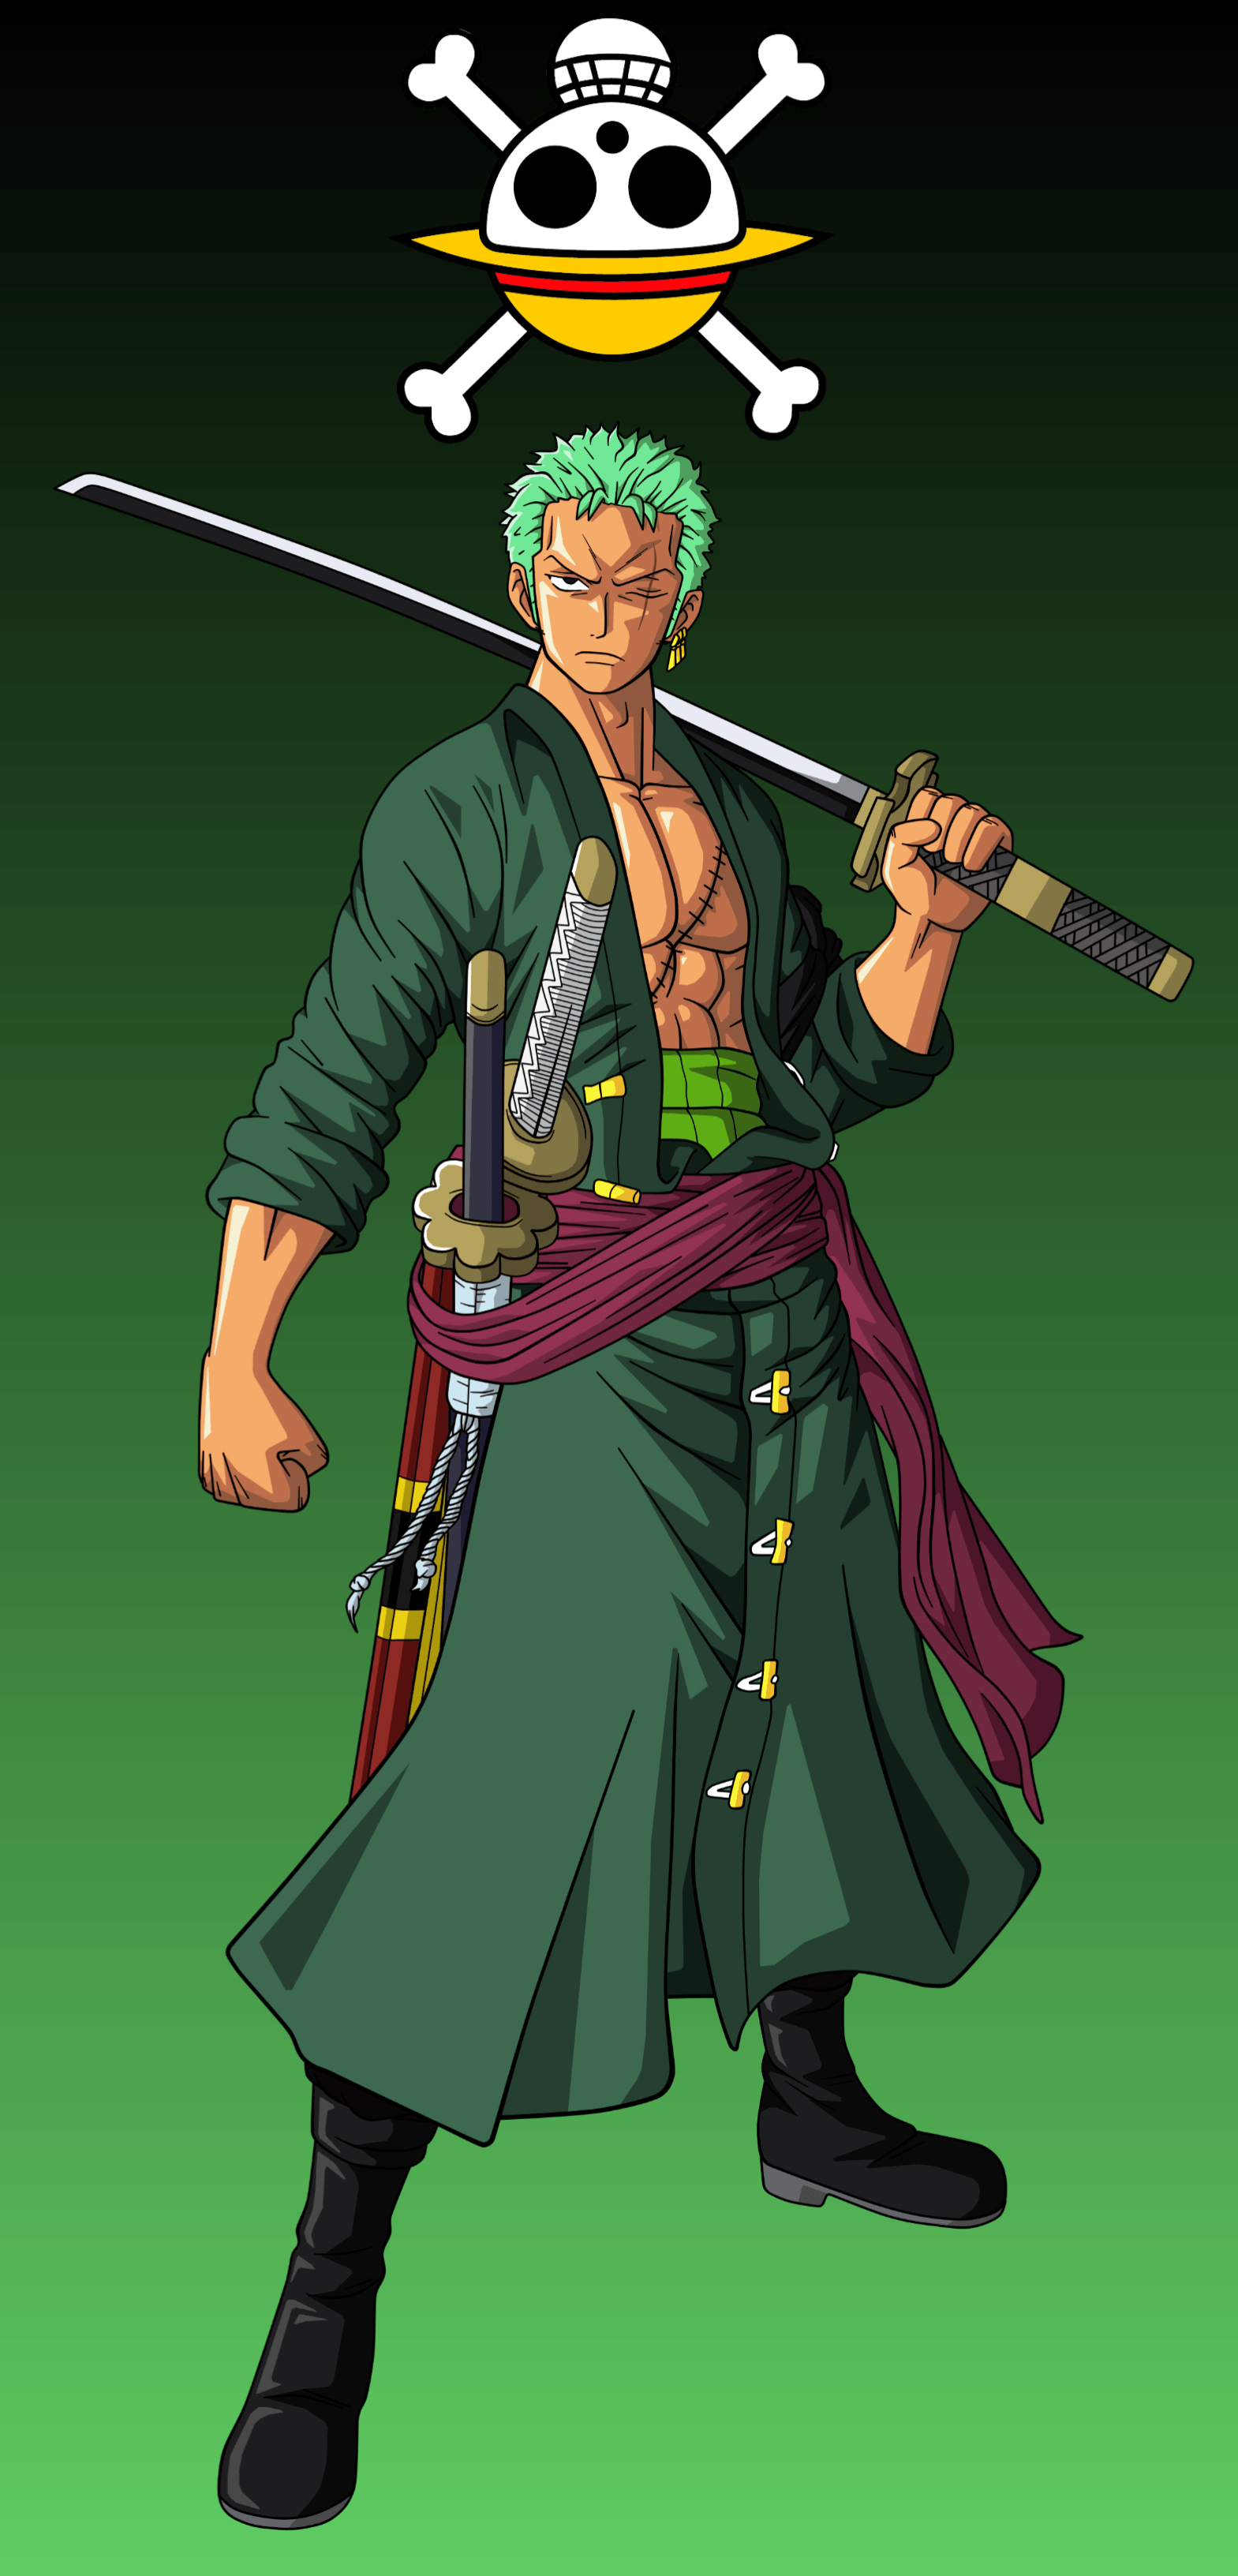 Zoro One Piece Phone Wallpapers - Wallpaper Cave